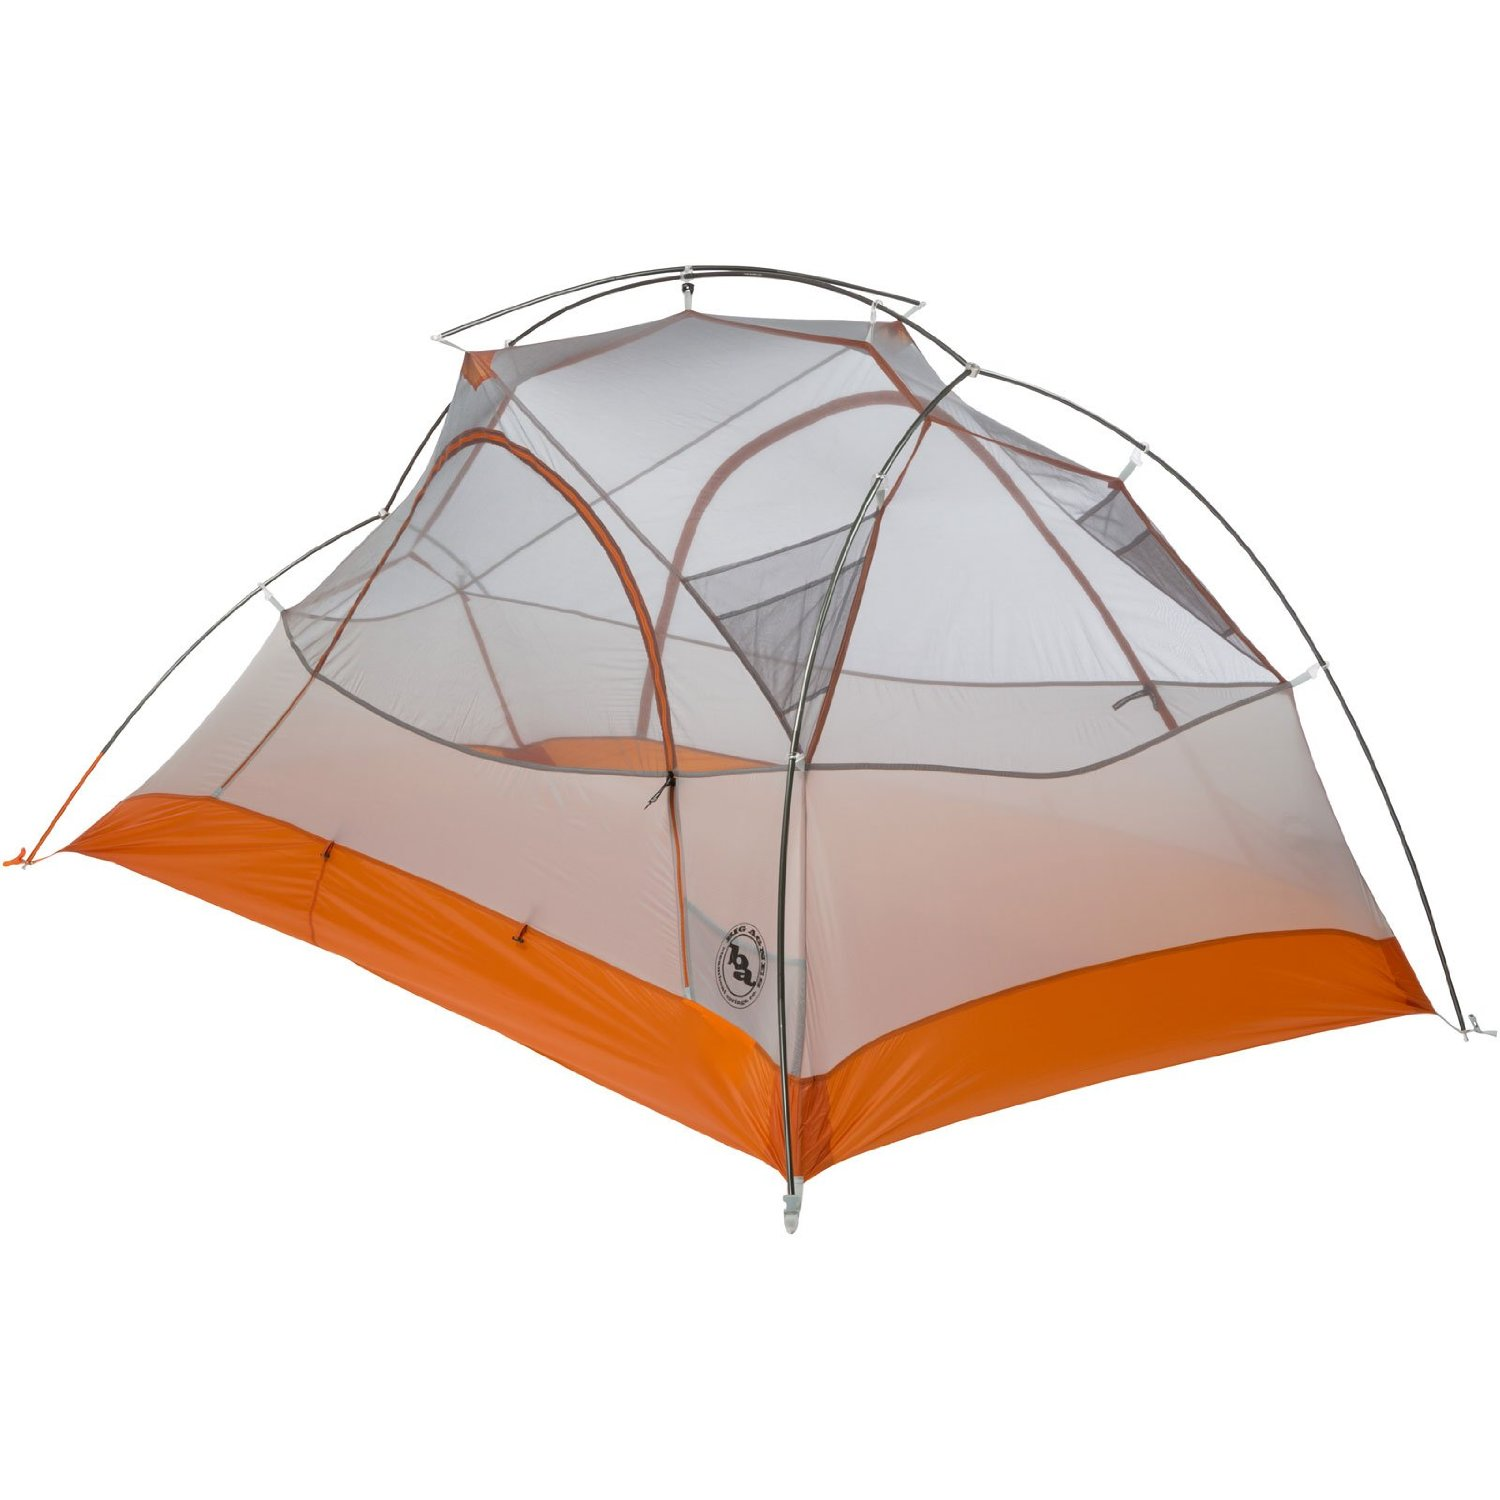 Big Agnes Copper Spur Two-Person Tent for Camping - Ultralight Trail Tent, Three Season Backpacking Tent